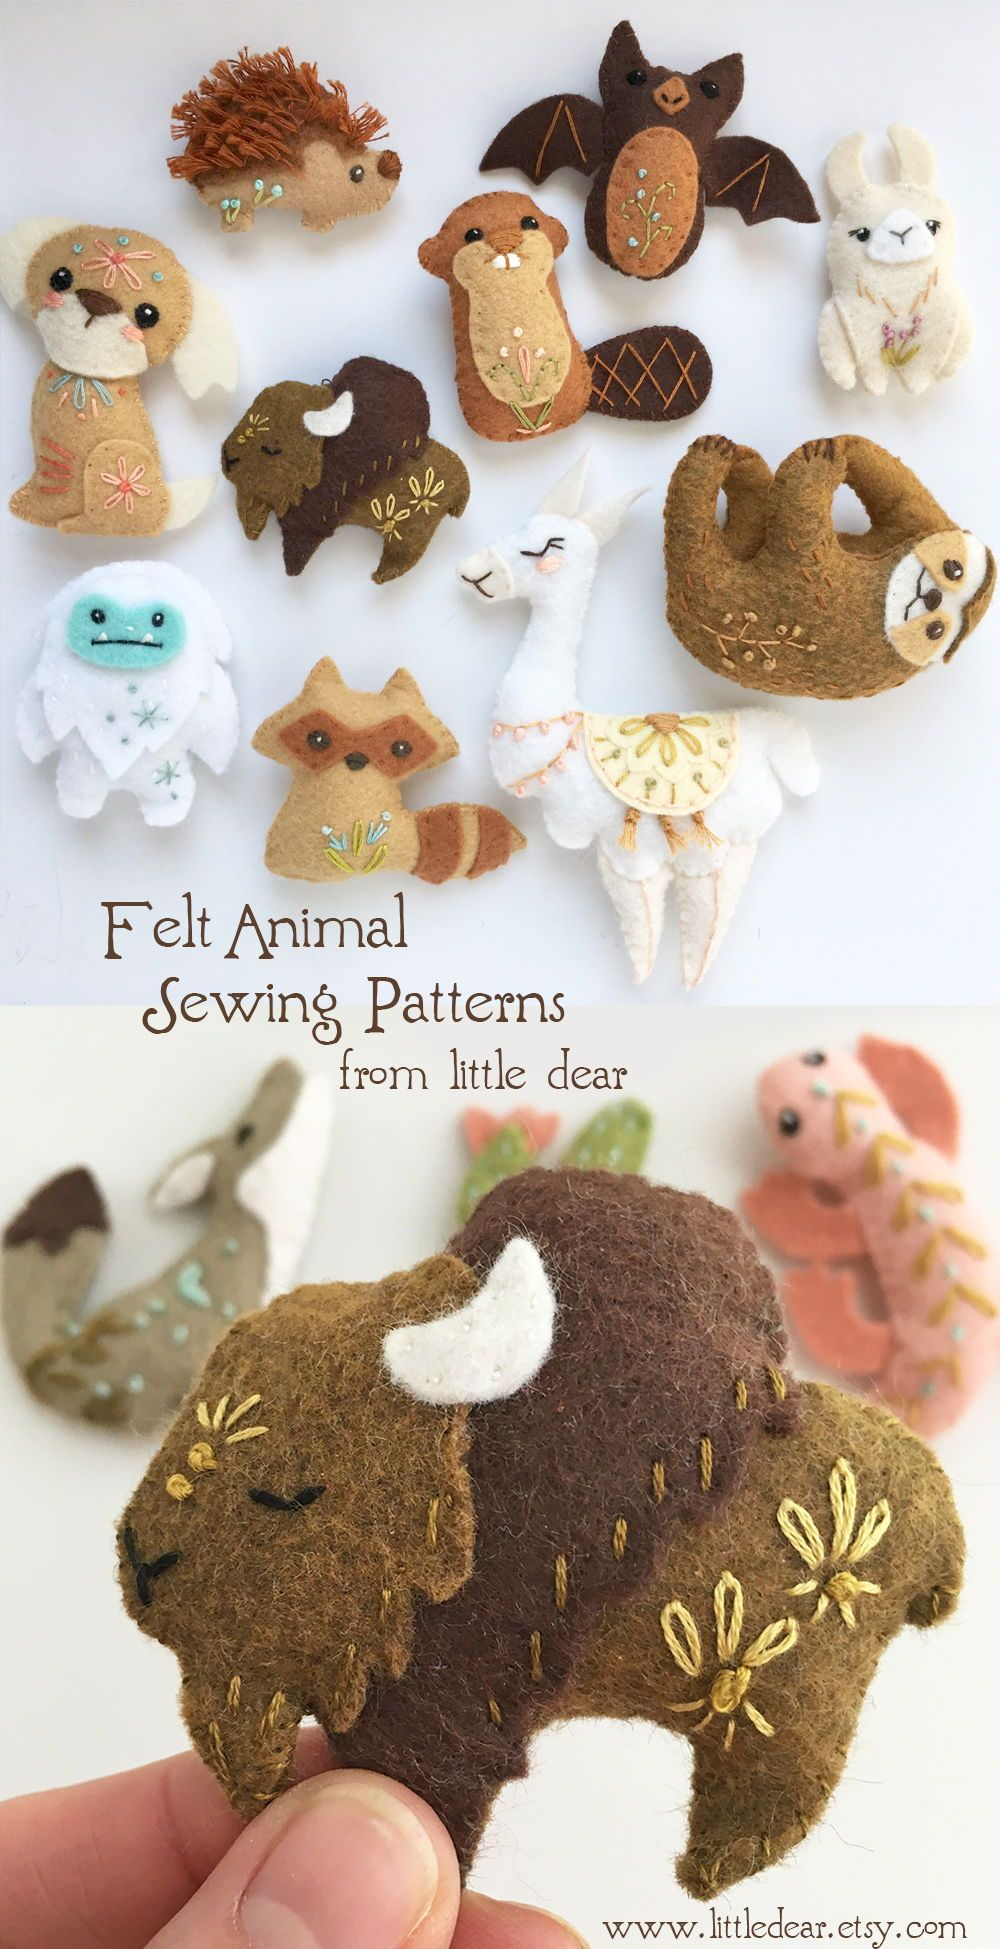 Find Your Spirit Animal Mini Felt Plush Sewing Pattern At Www Littledear Etsy Com Feltanimals Sewingpatter Animal Sewing Patterns Mini Felt Animals Felt Diy